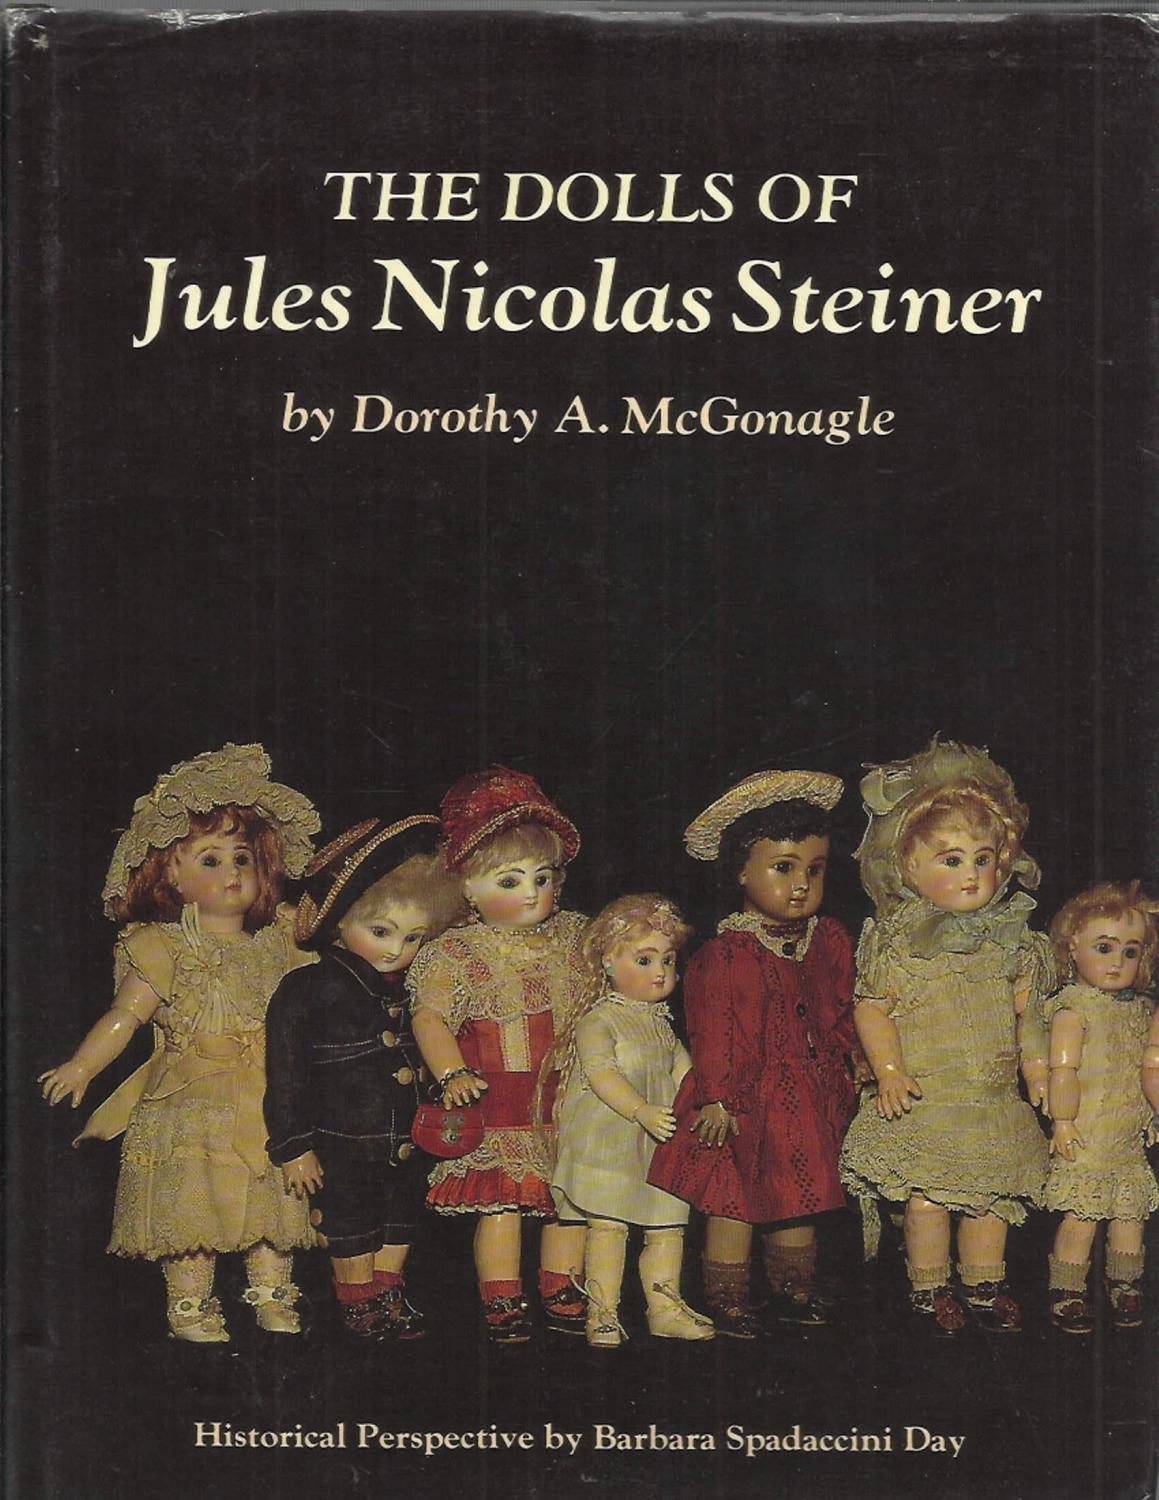 THE DOLLS OF JULES NICOLAS STEINER. Historical Perspective By Barbara Spadaccini Day. Photographs By The Author. - McGonagle, Dorothy A.